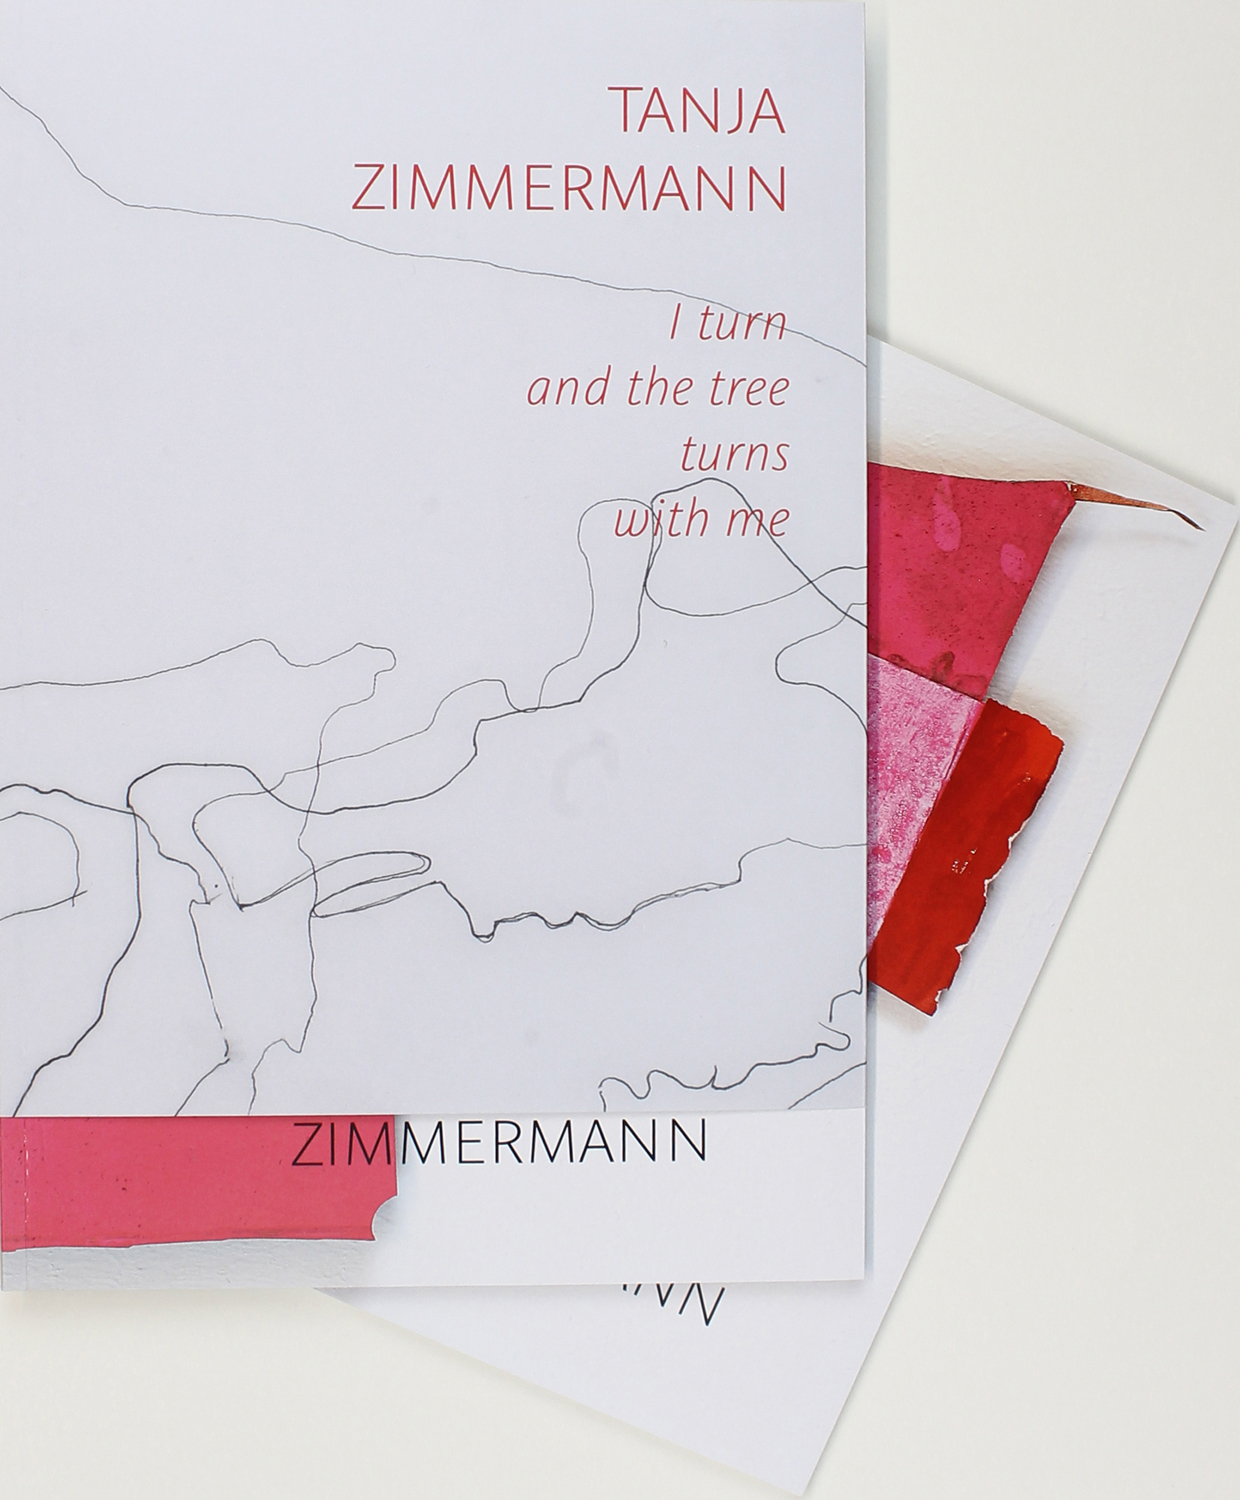 Katalog: Tanja Zimmermann - I turn and the tree turns with me